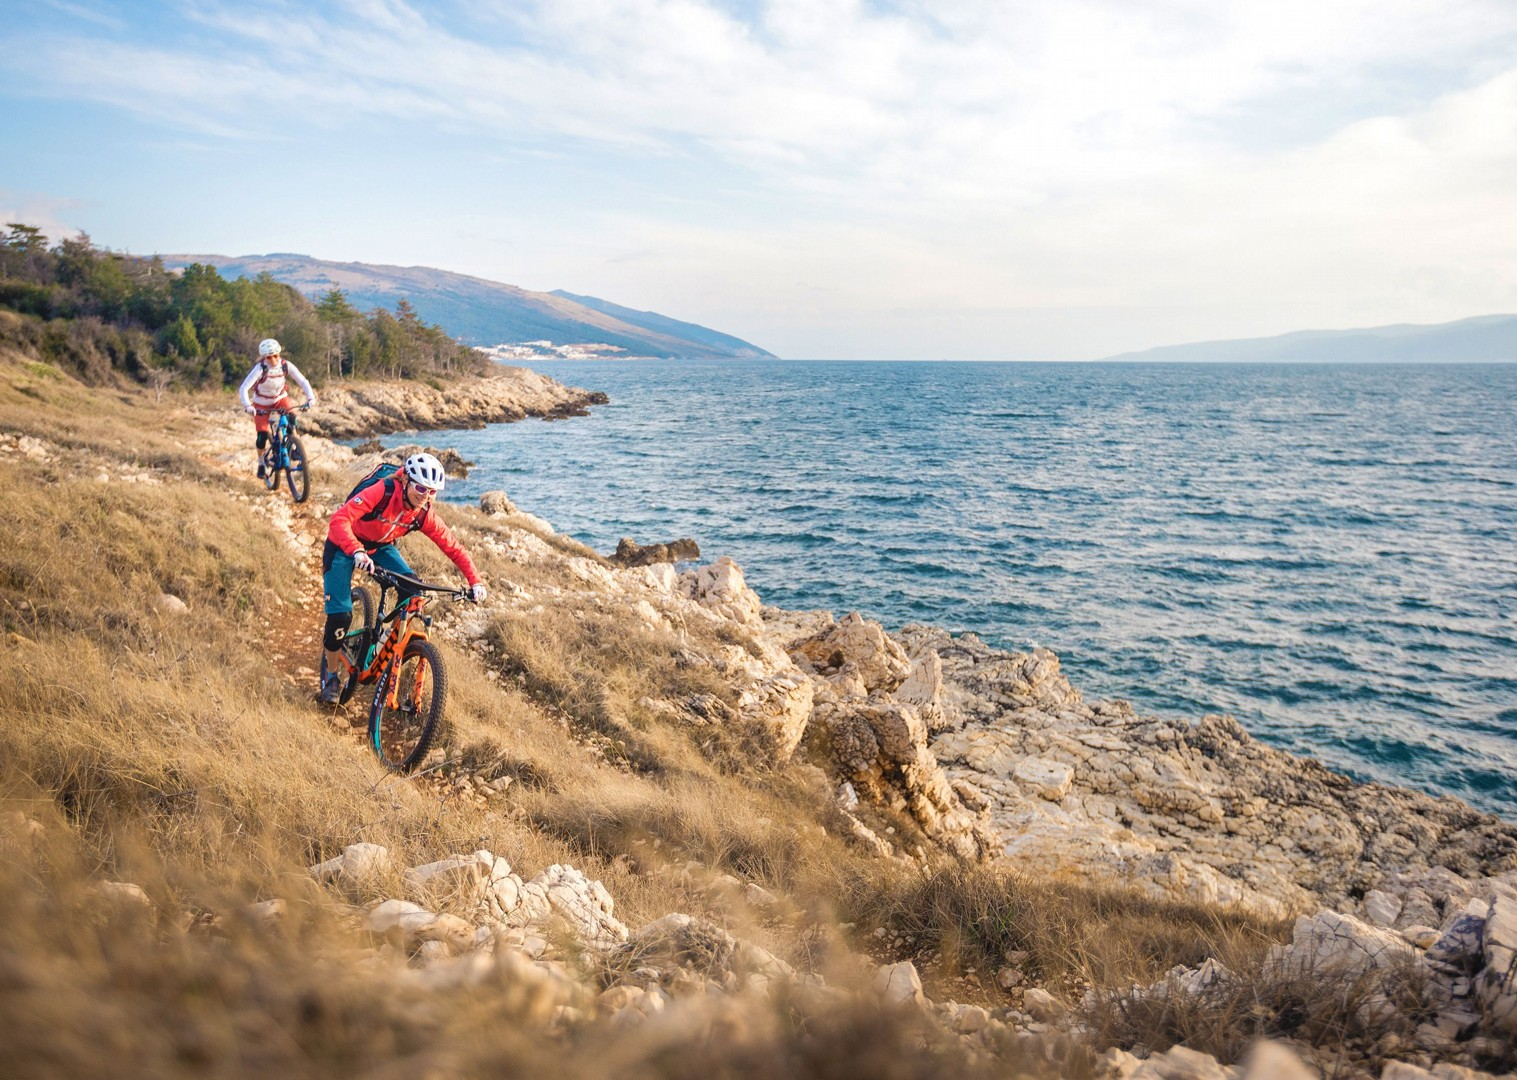 mountain-biking-in-croatia-new-holiday-skedaddle.jpg - NEW! Croatia - Terra Magica - Mountain Biking